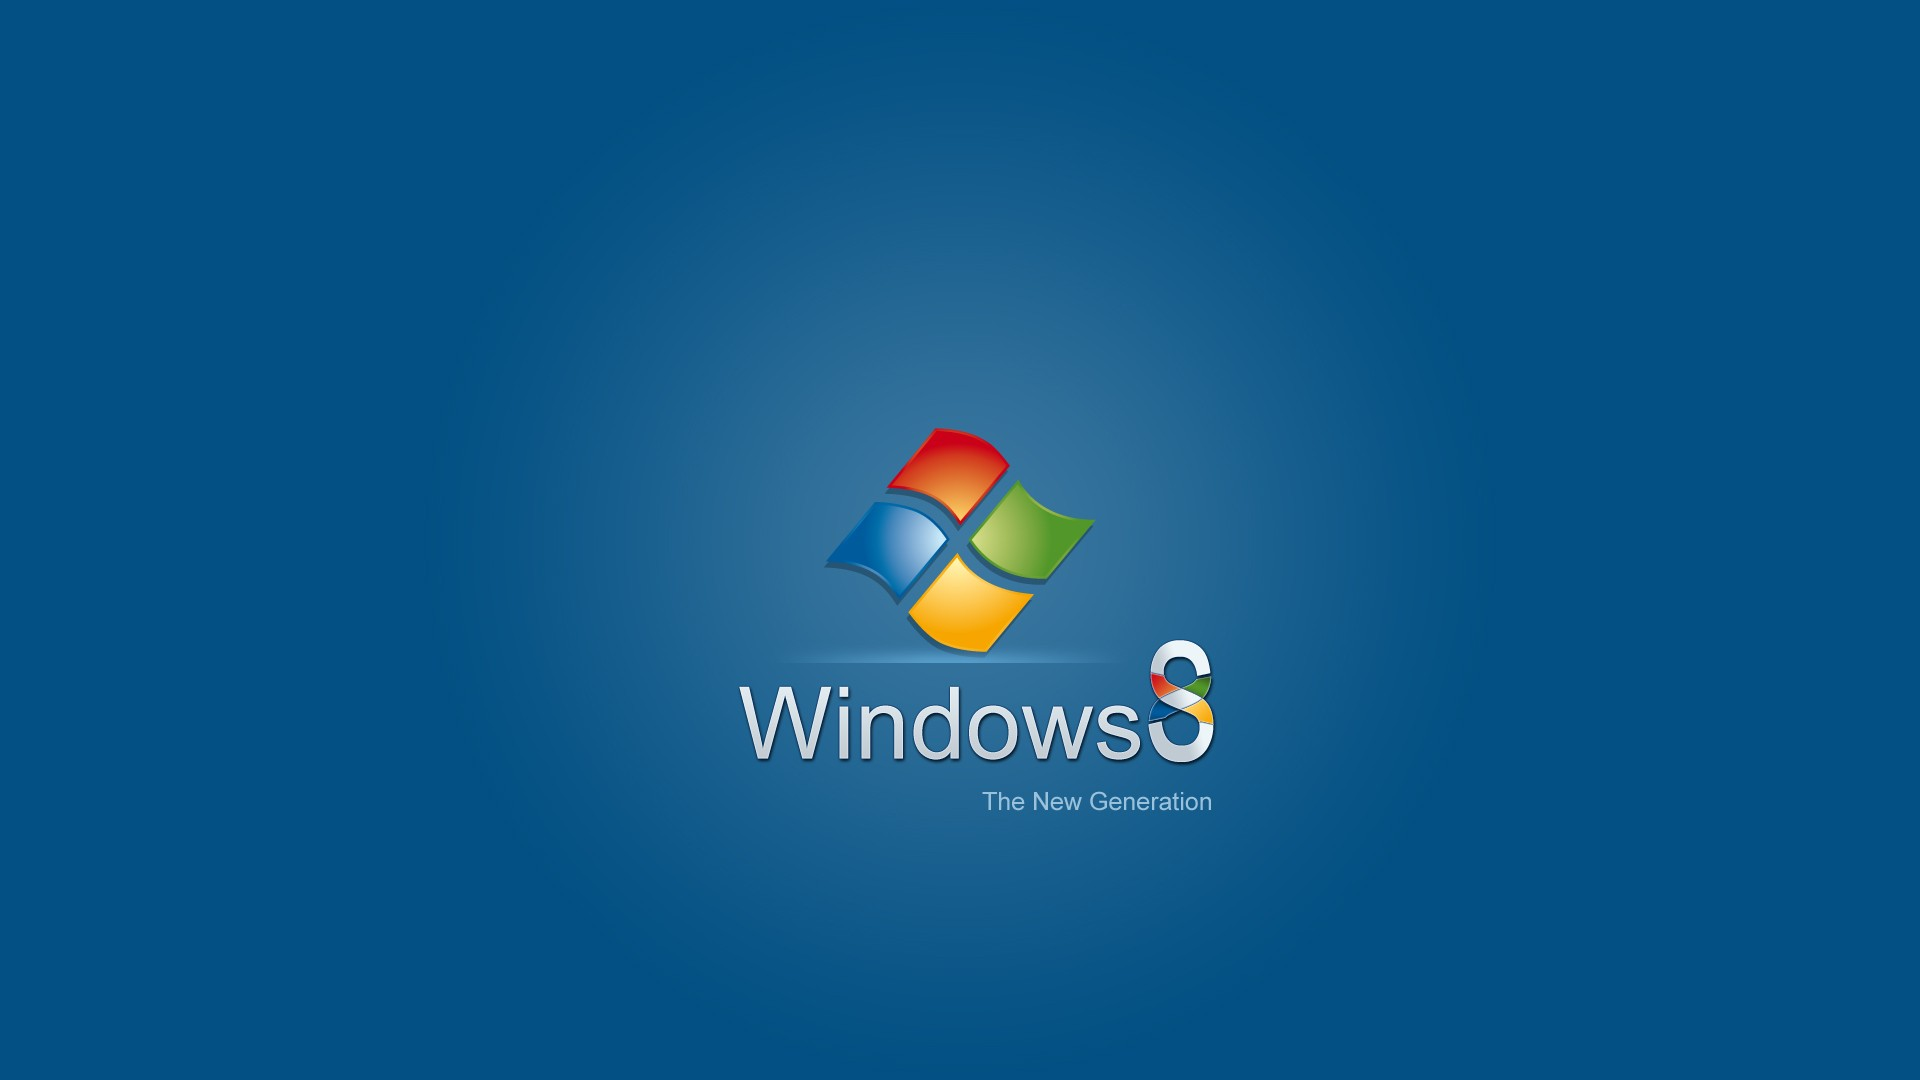 Google themes windows 8 - Windows Colorful Google Wallpaper Themes Images Wallpapers